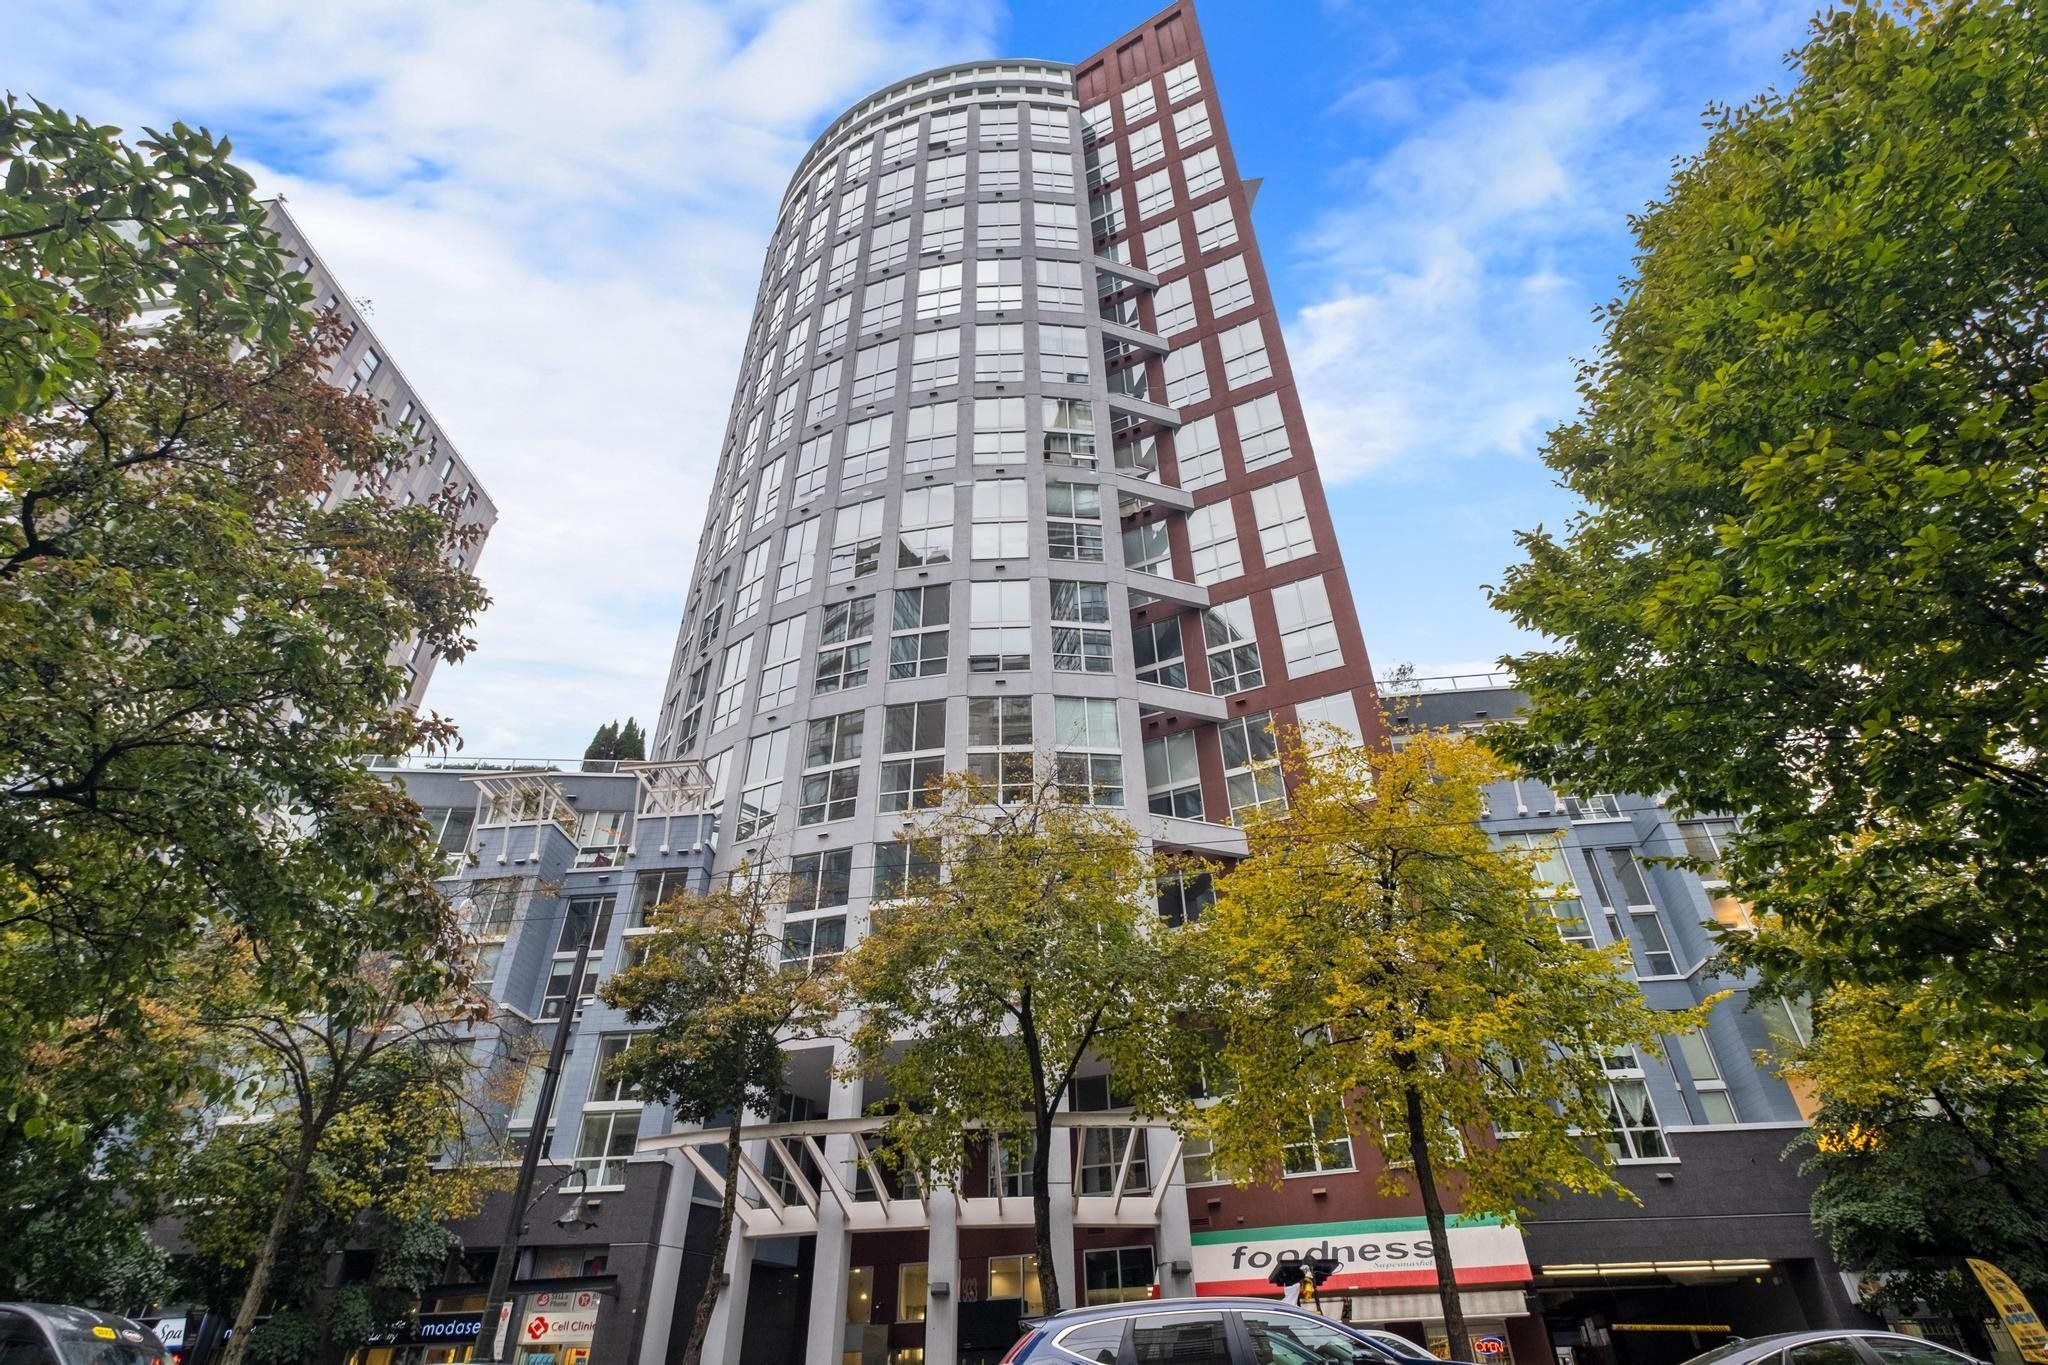 """Main Photo: 420 933 SEYMOUR Street in Vancouver: Downtown VW Condo for sale in """"The Spot"""" (Vancouver West)  : MLS®# R2624826"""